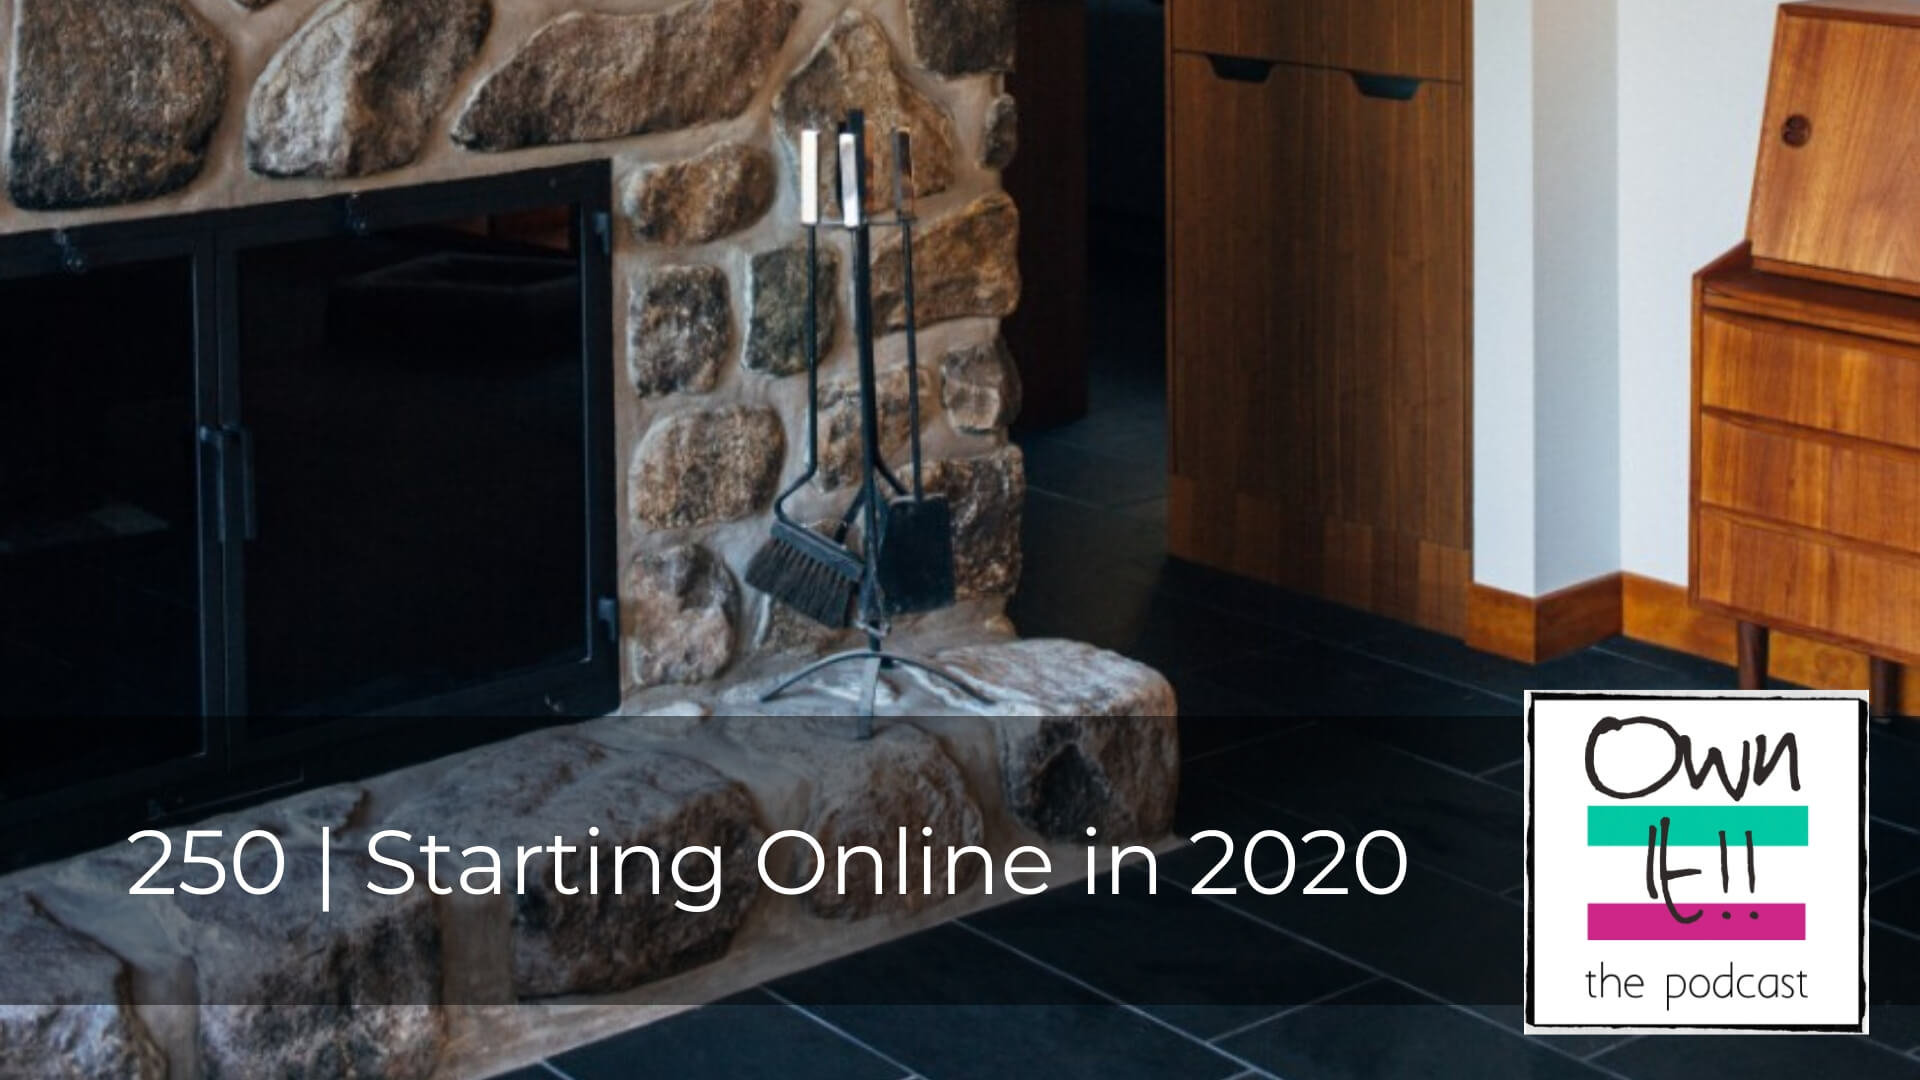 Own It! 250 | Starting Online in 2020